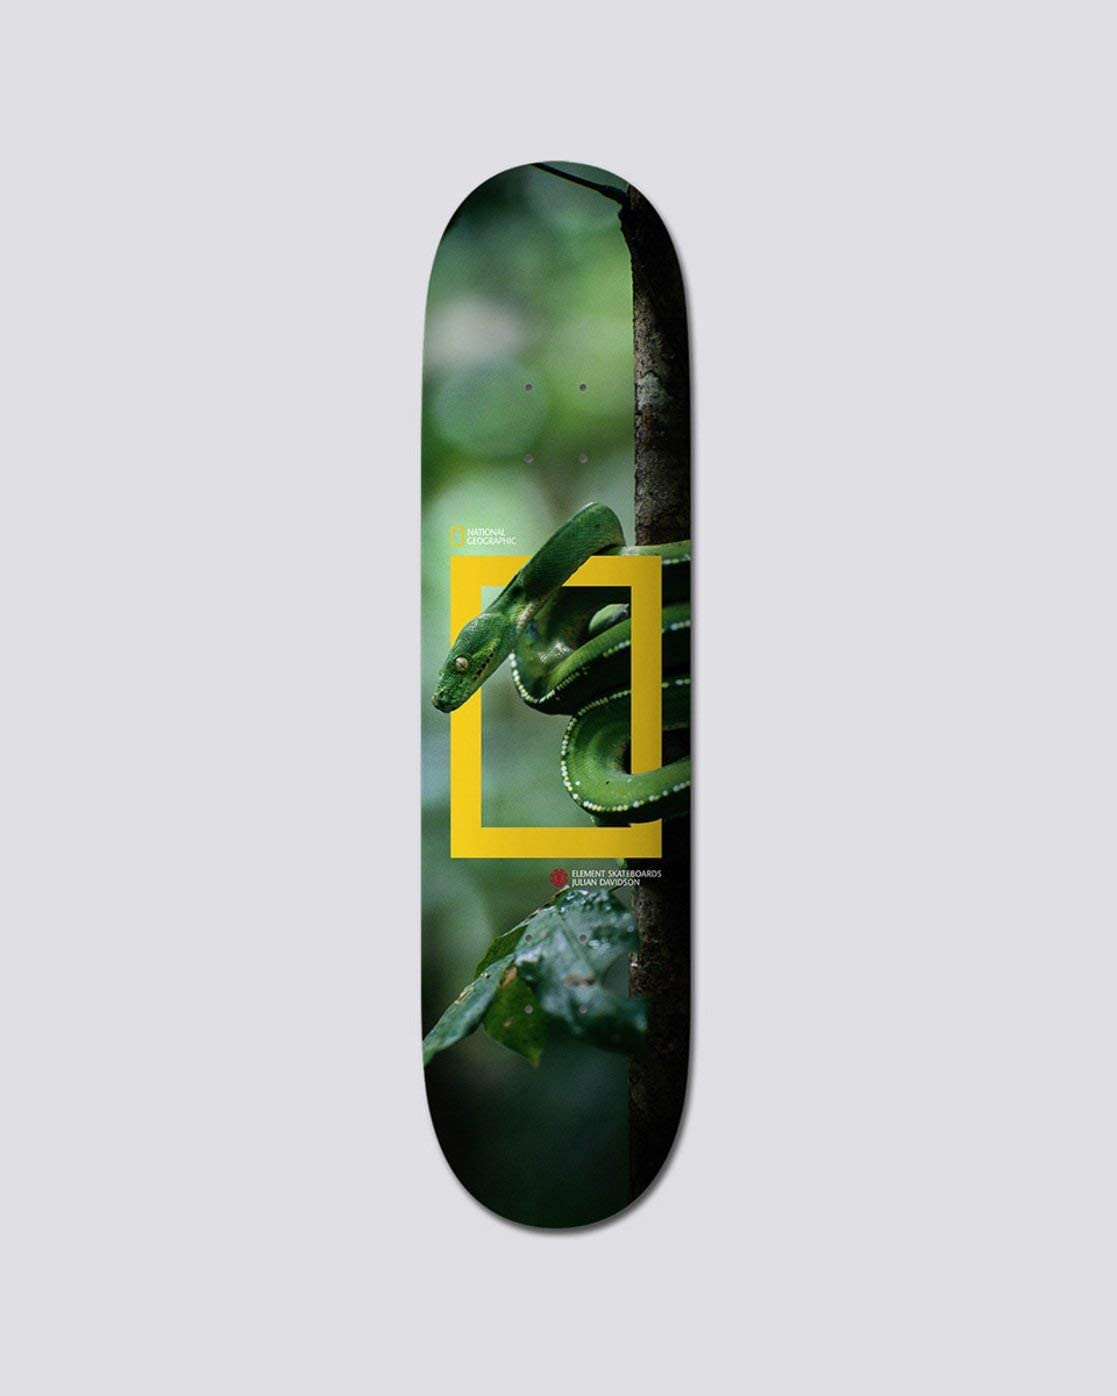 Element Davidson Nat Geo Snake 8.25 Deck kaufen